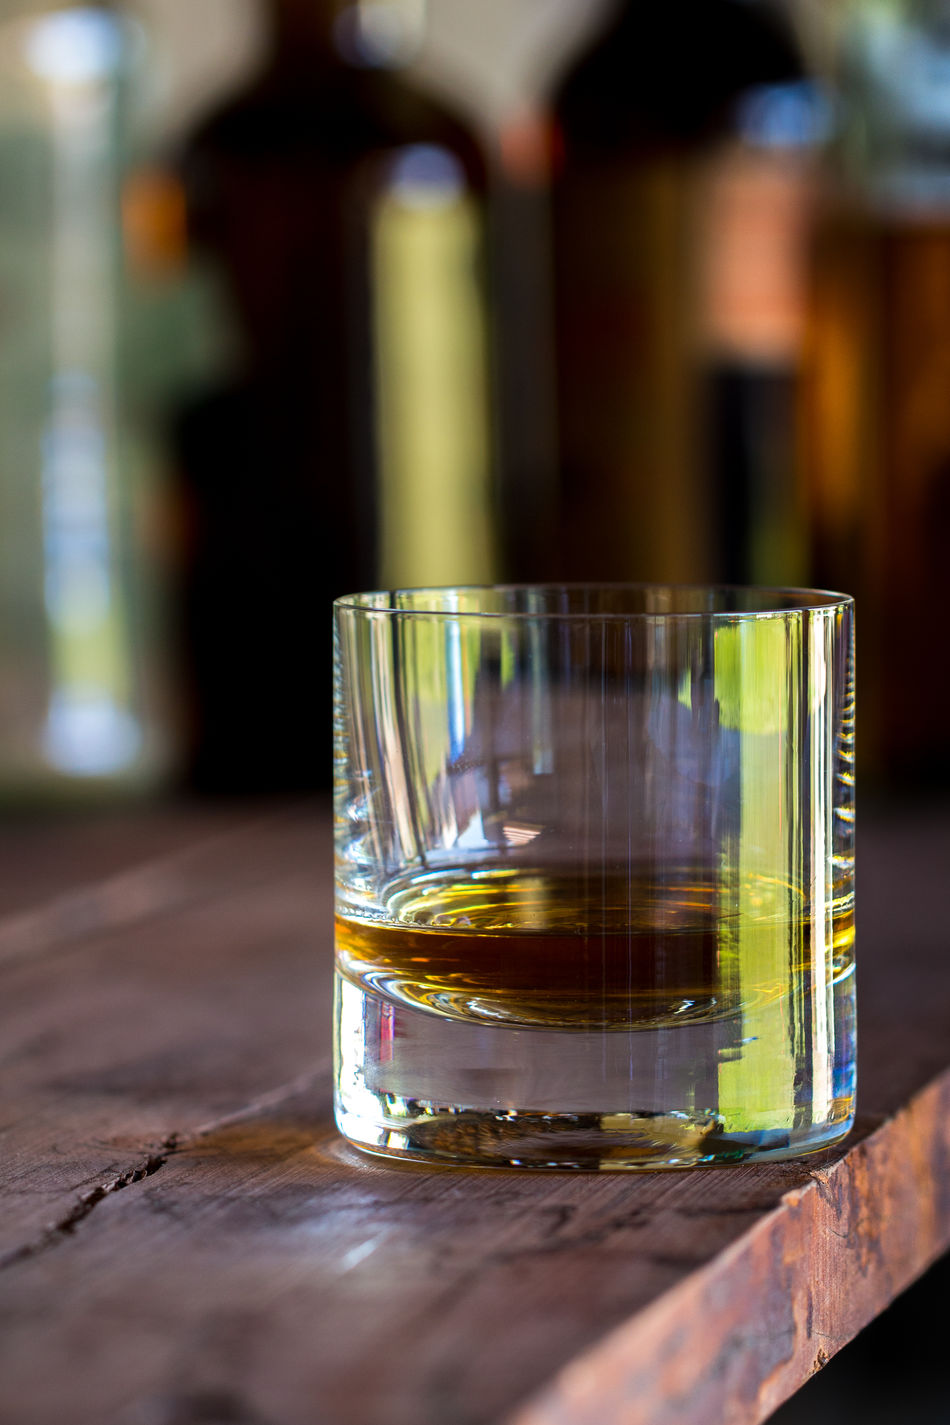 Drinking Glass Drink No People Close-up Alcohol Whiskey Bottles Bar Table Wood Barrel Status GLAMOR